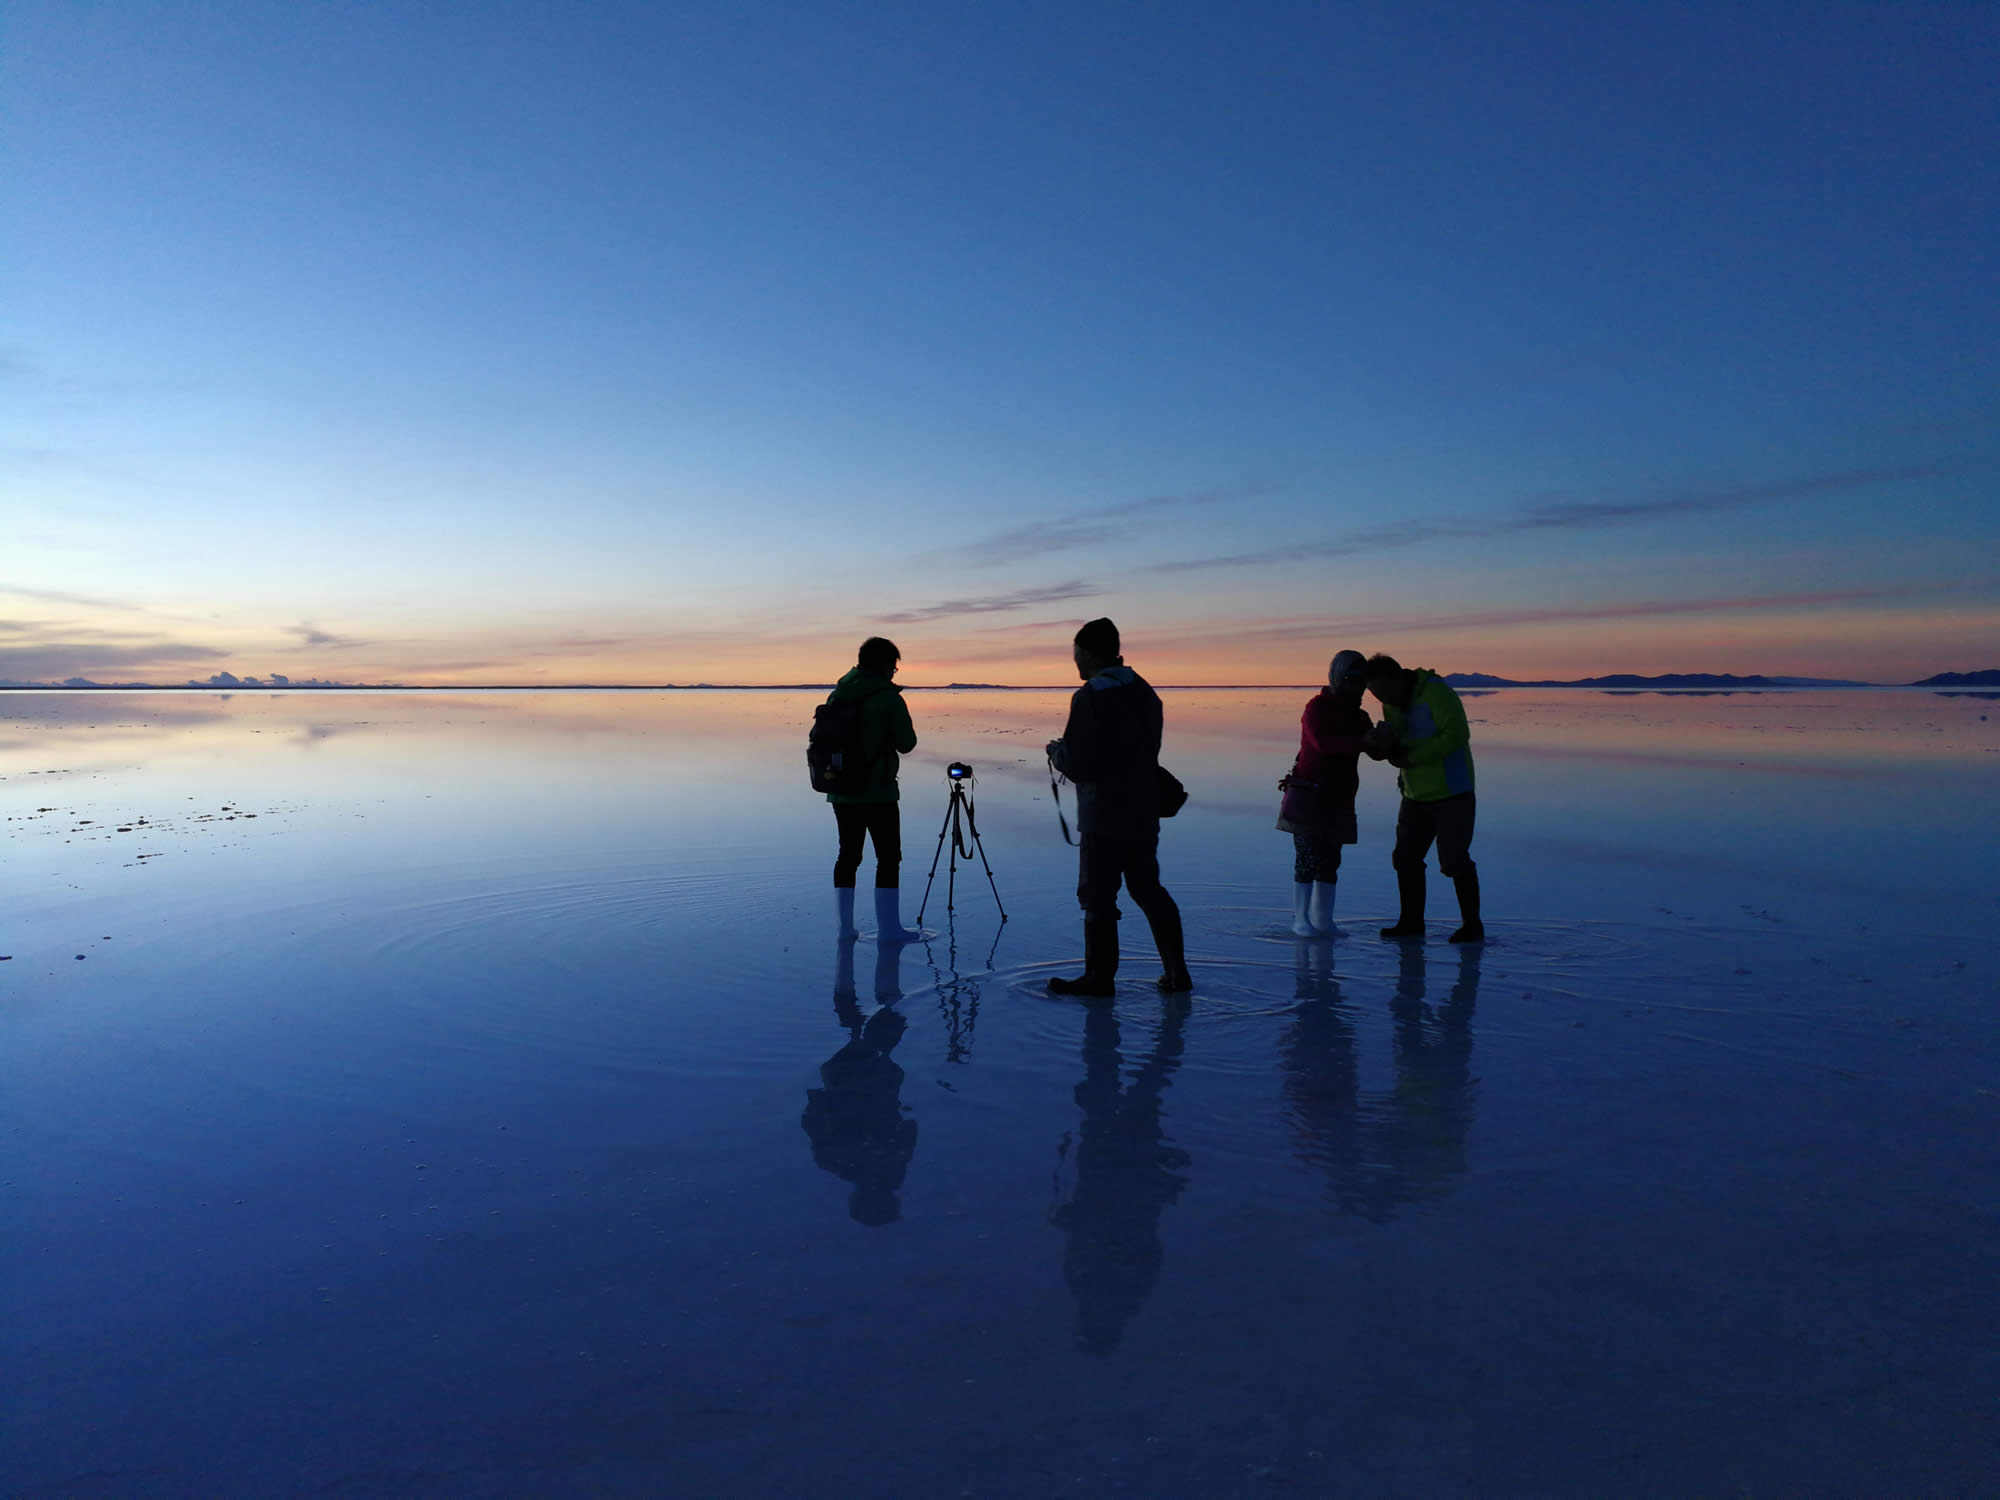 Private Tour Salar de Uyuni Stargazing, Sunrise and Sunset 1 Day, 1 Night, 1 Day, 1 Night